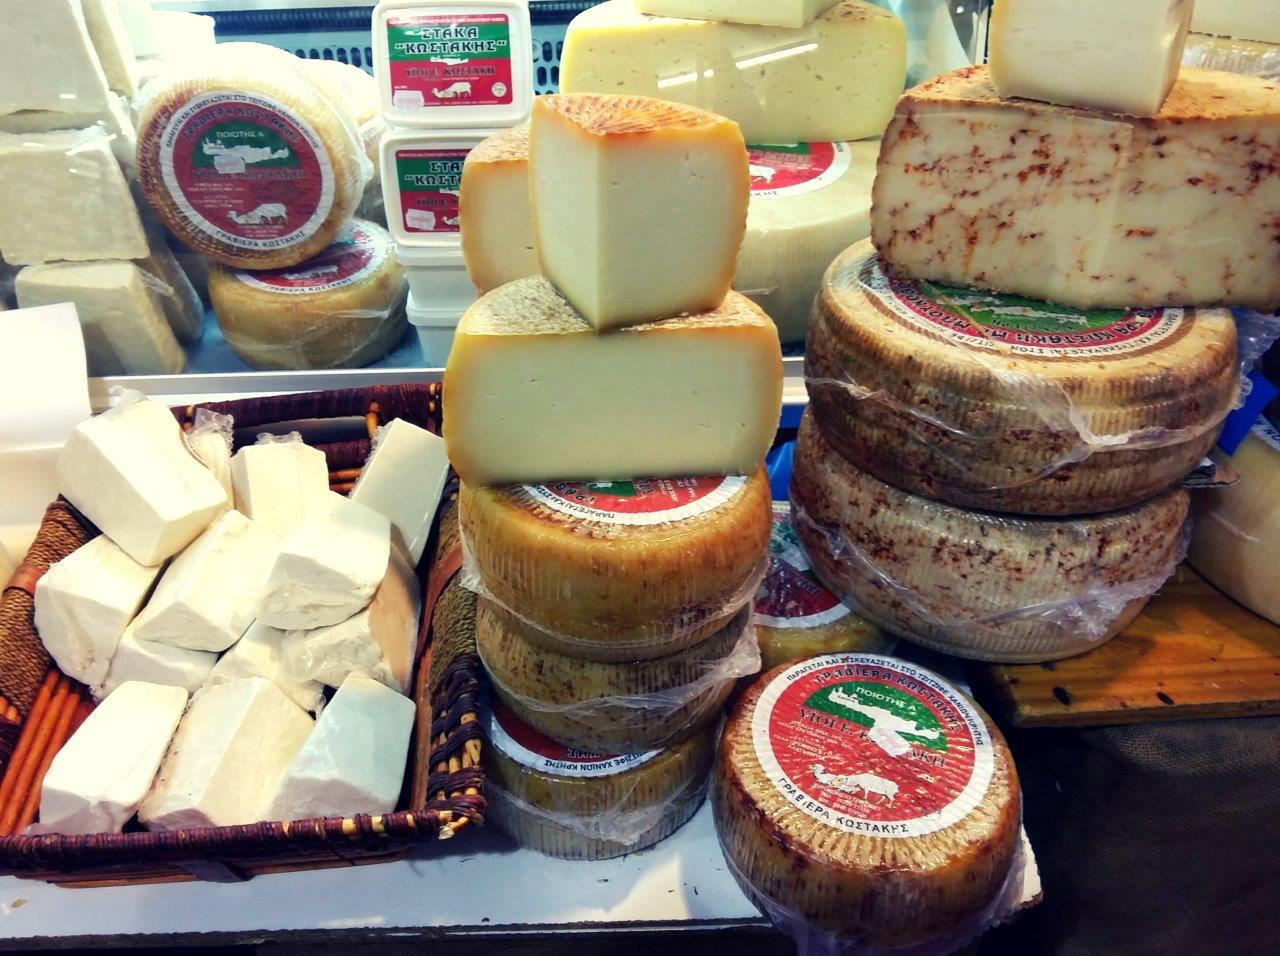 Greek feta and other types of cheese